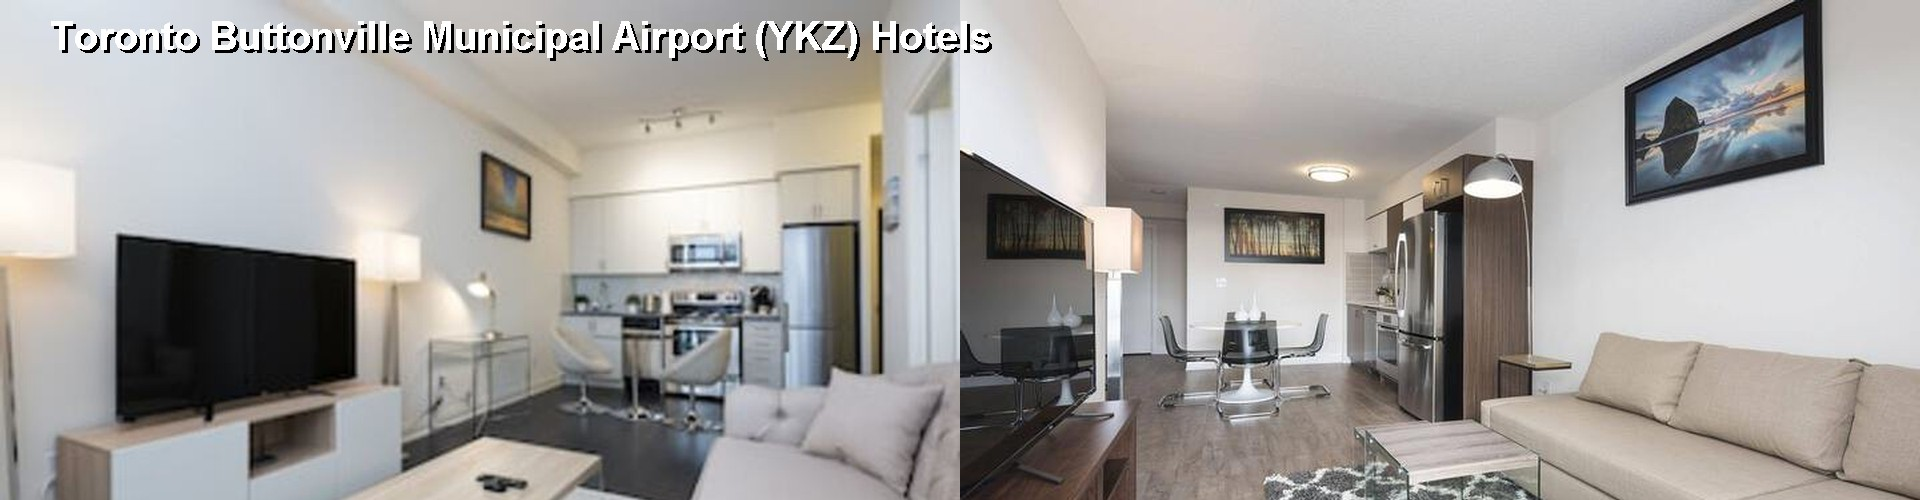 5 Best Hotels near Toronto Buttonville Municipal Airport (YKZ)